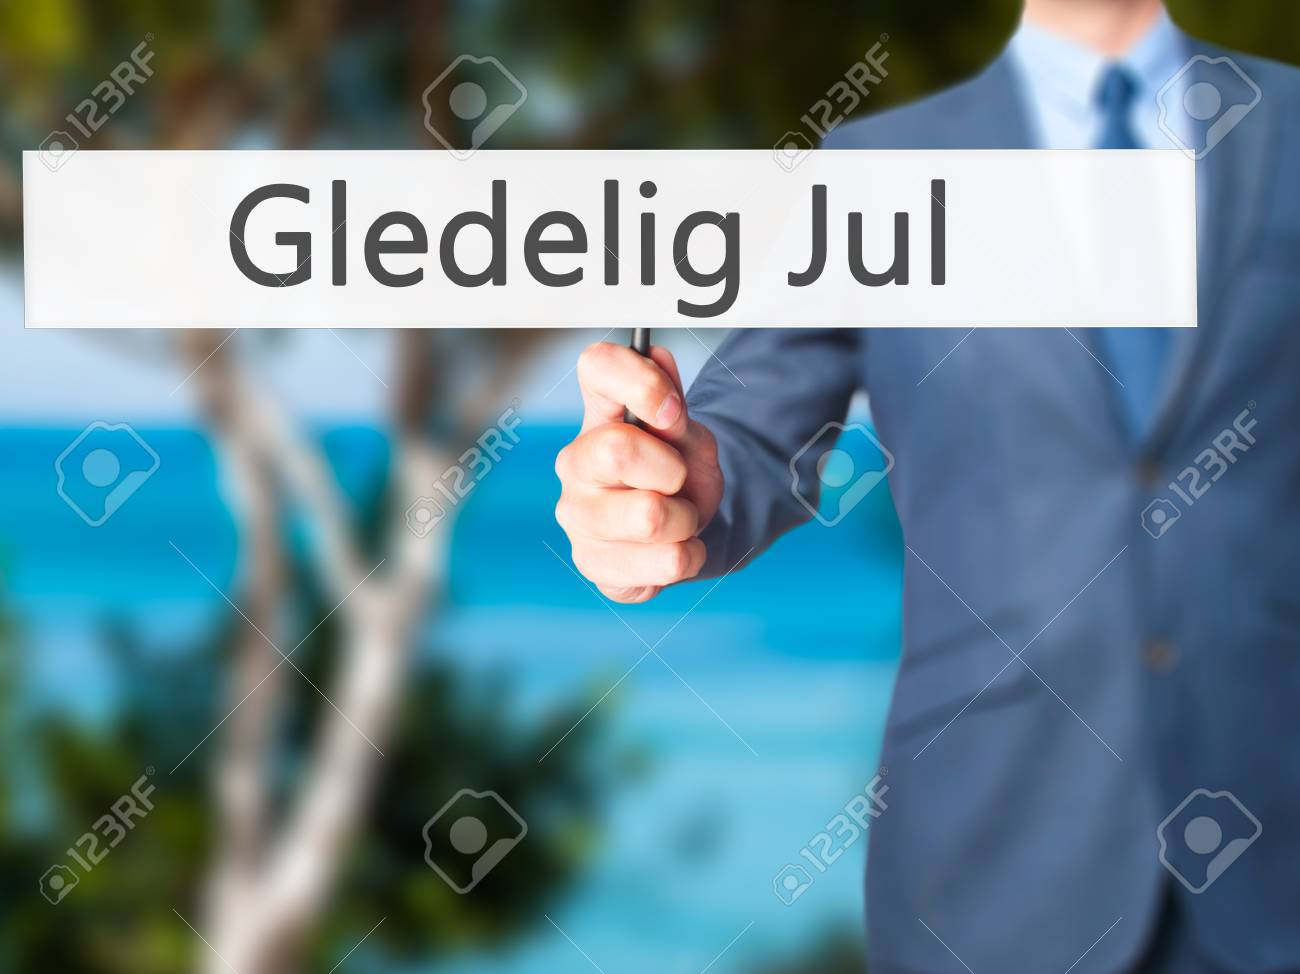 68ee6e9d Gledelig Jul (Happy Christmas in Norwegian) - Businessman hand holding  sign. Business,